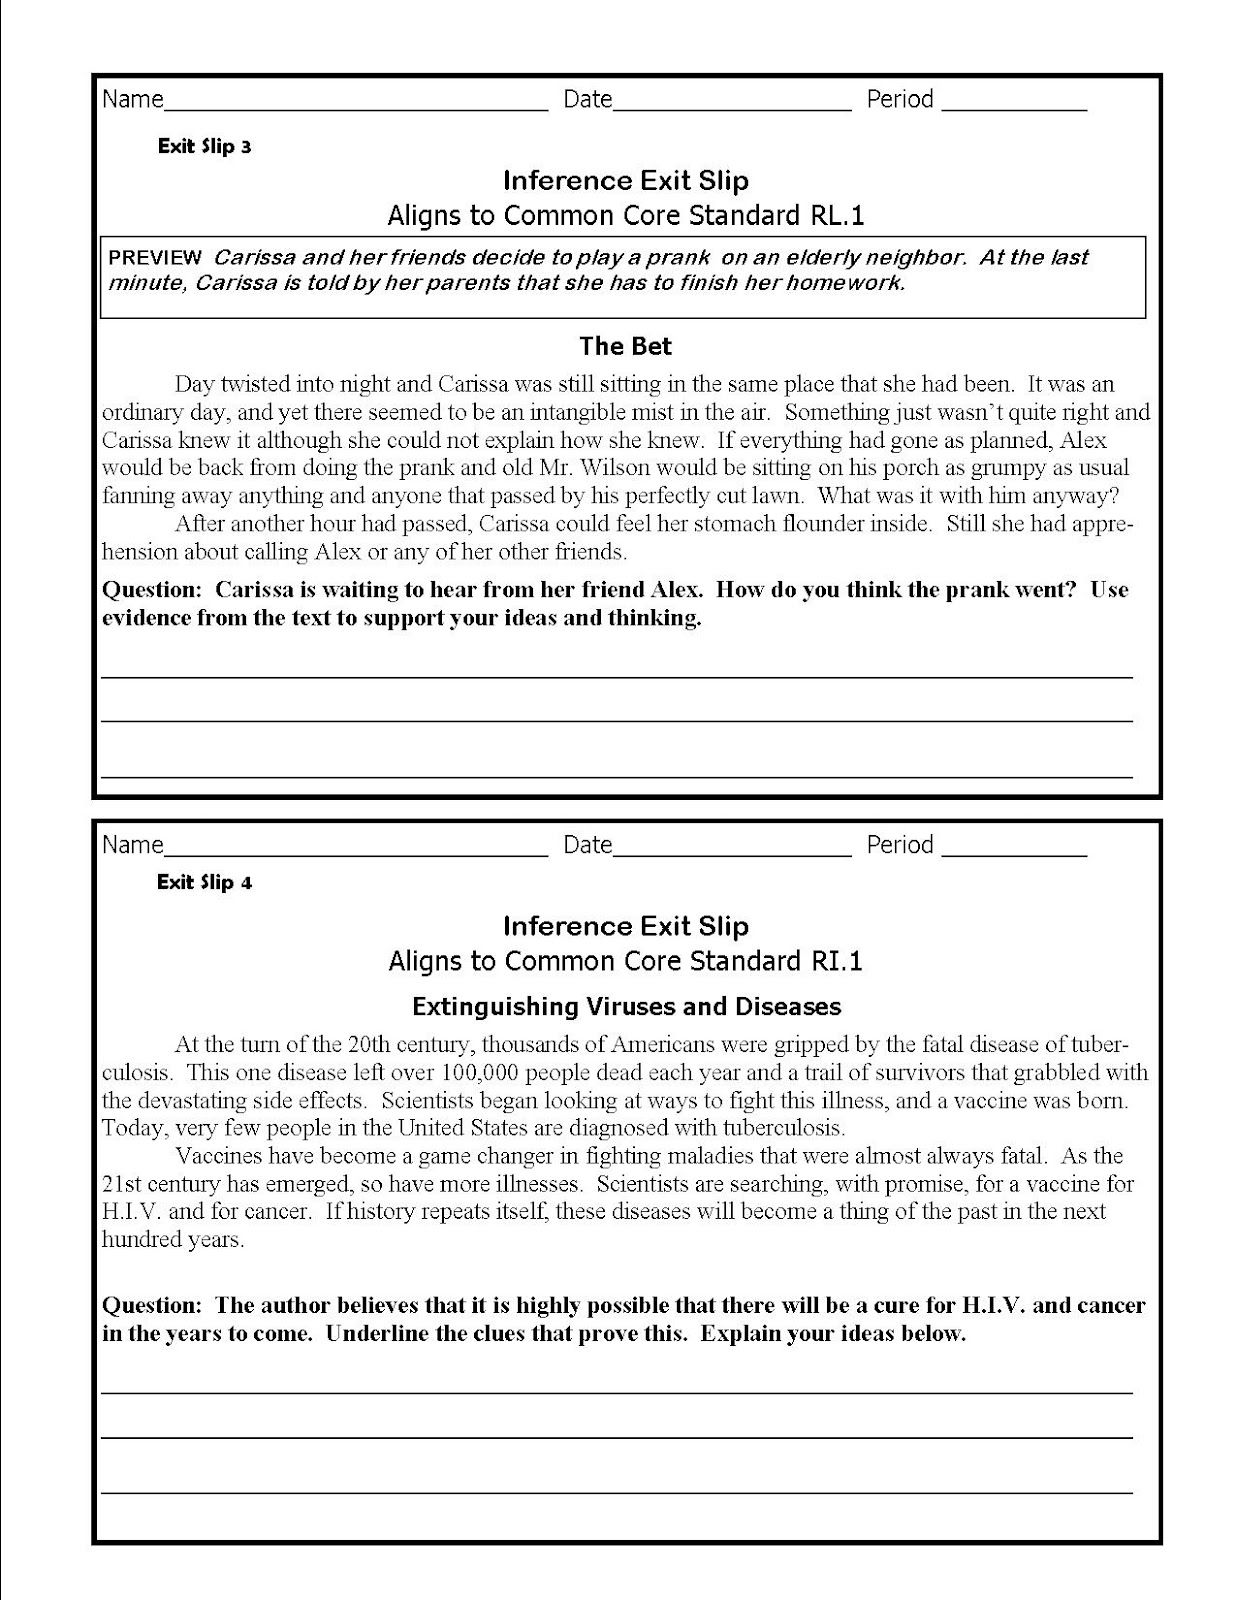 Worksheets Making Inferences Worksheet 4th Grade the lesson cloud middle school common core inference exit slips slips